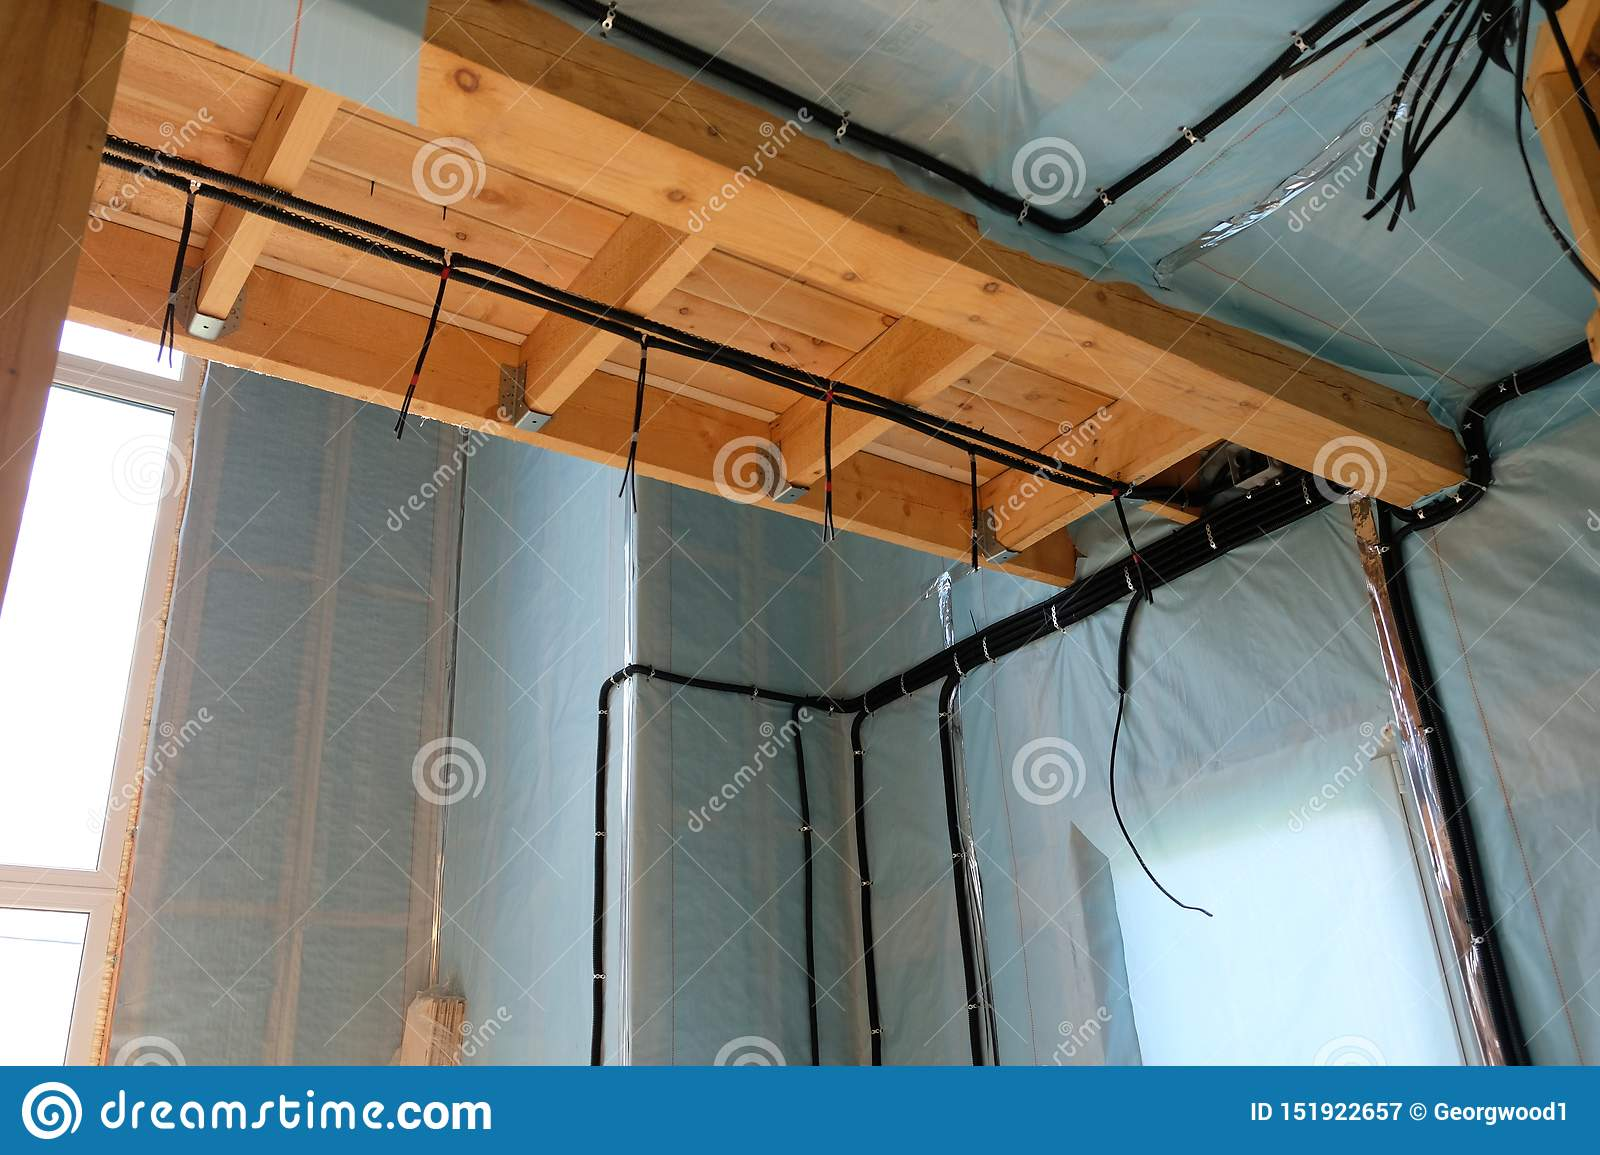 Electrical Wires In The House Stock Image Image Of Work Construction 151922657